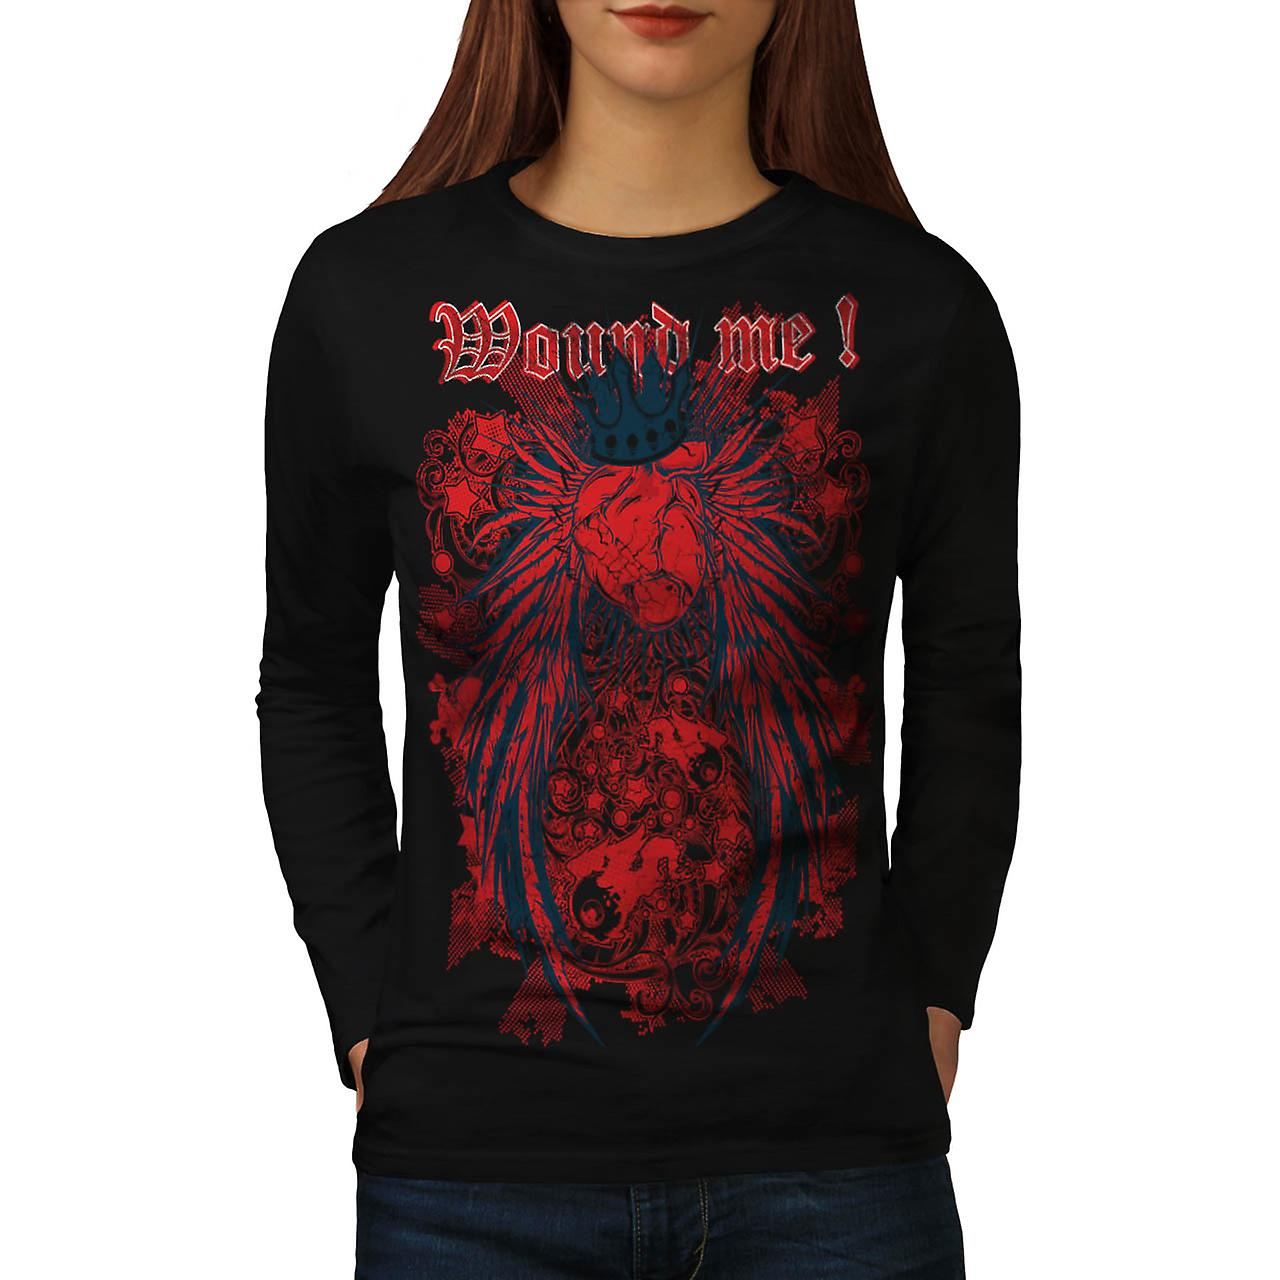 Mound Me Heart Royal Love Queen Women Black Long Sleeve T-shirt | Wellcoda